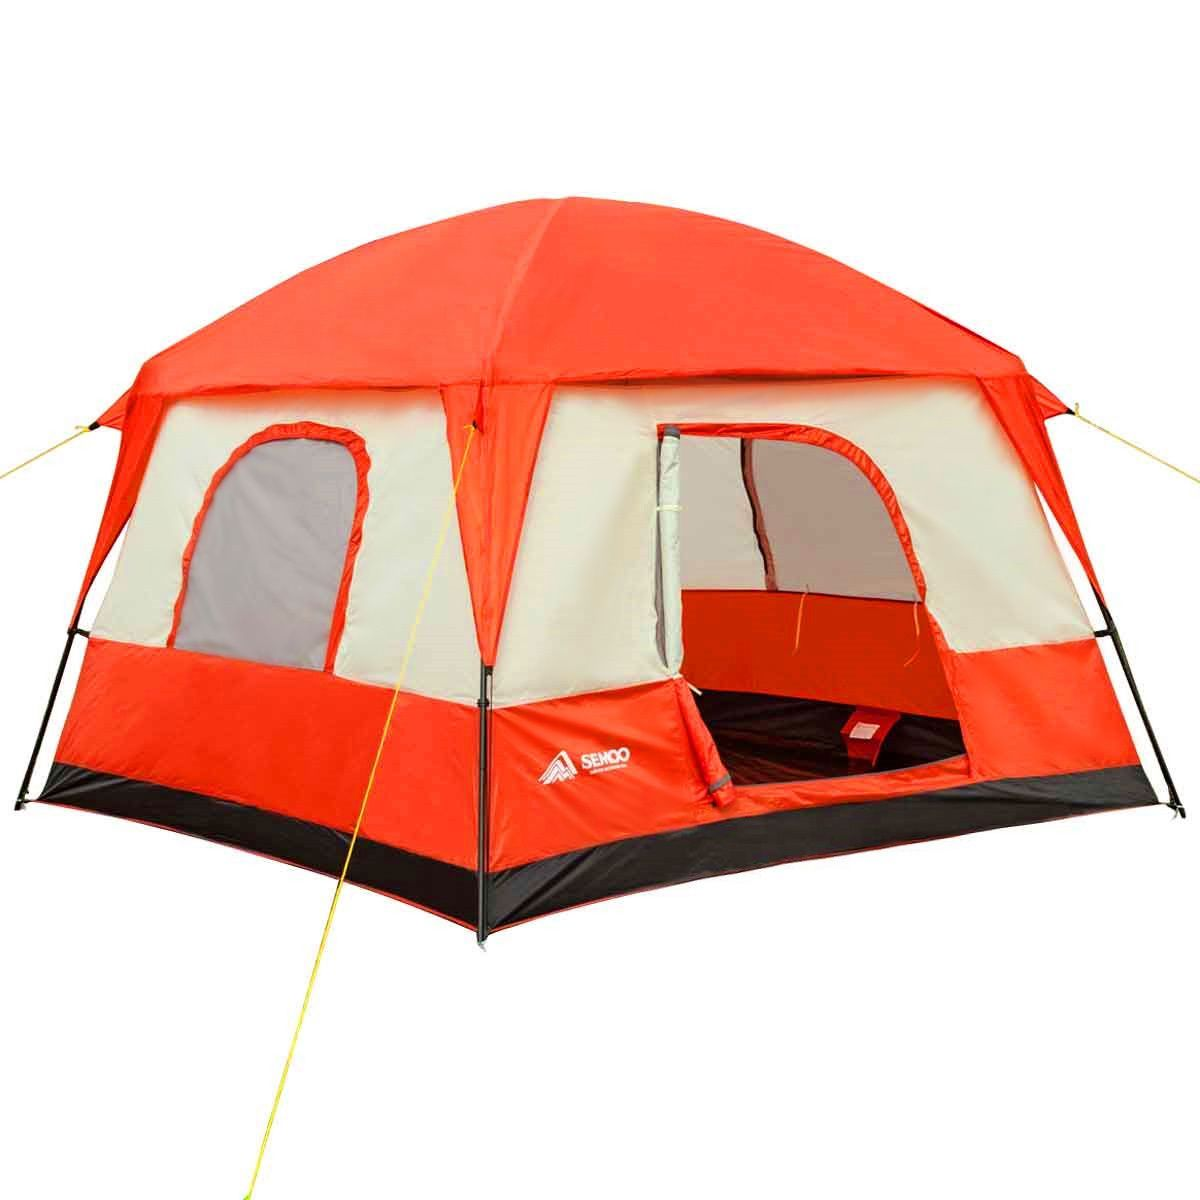 Semoo Waterproof 4-5 Person 2 Doors3 Season Family Cabin Tent for C&ing with Compression  sc 1 st  Pinterest & Semoo Waterproof 4-5 Person 2 Doors3 Season Family Cabin Tent for ...